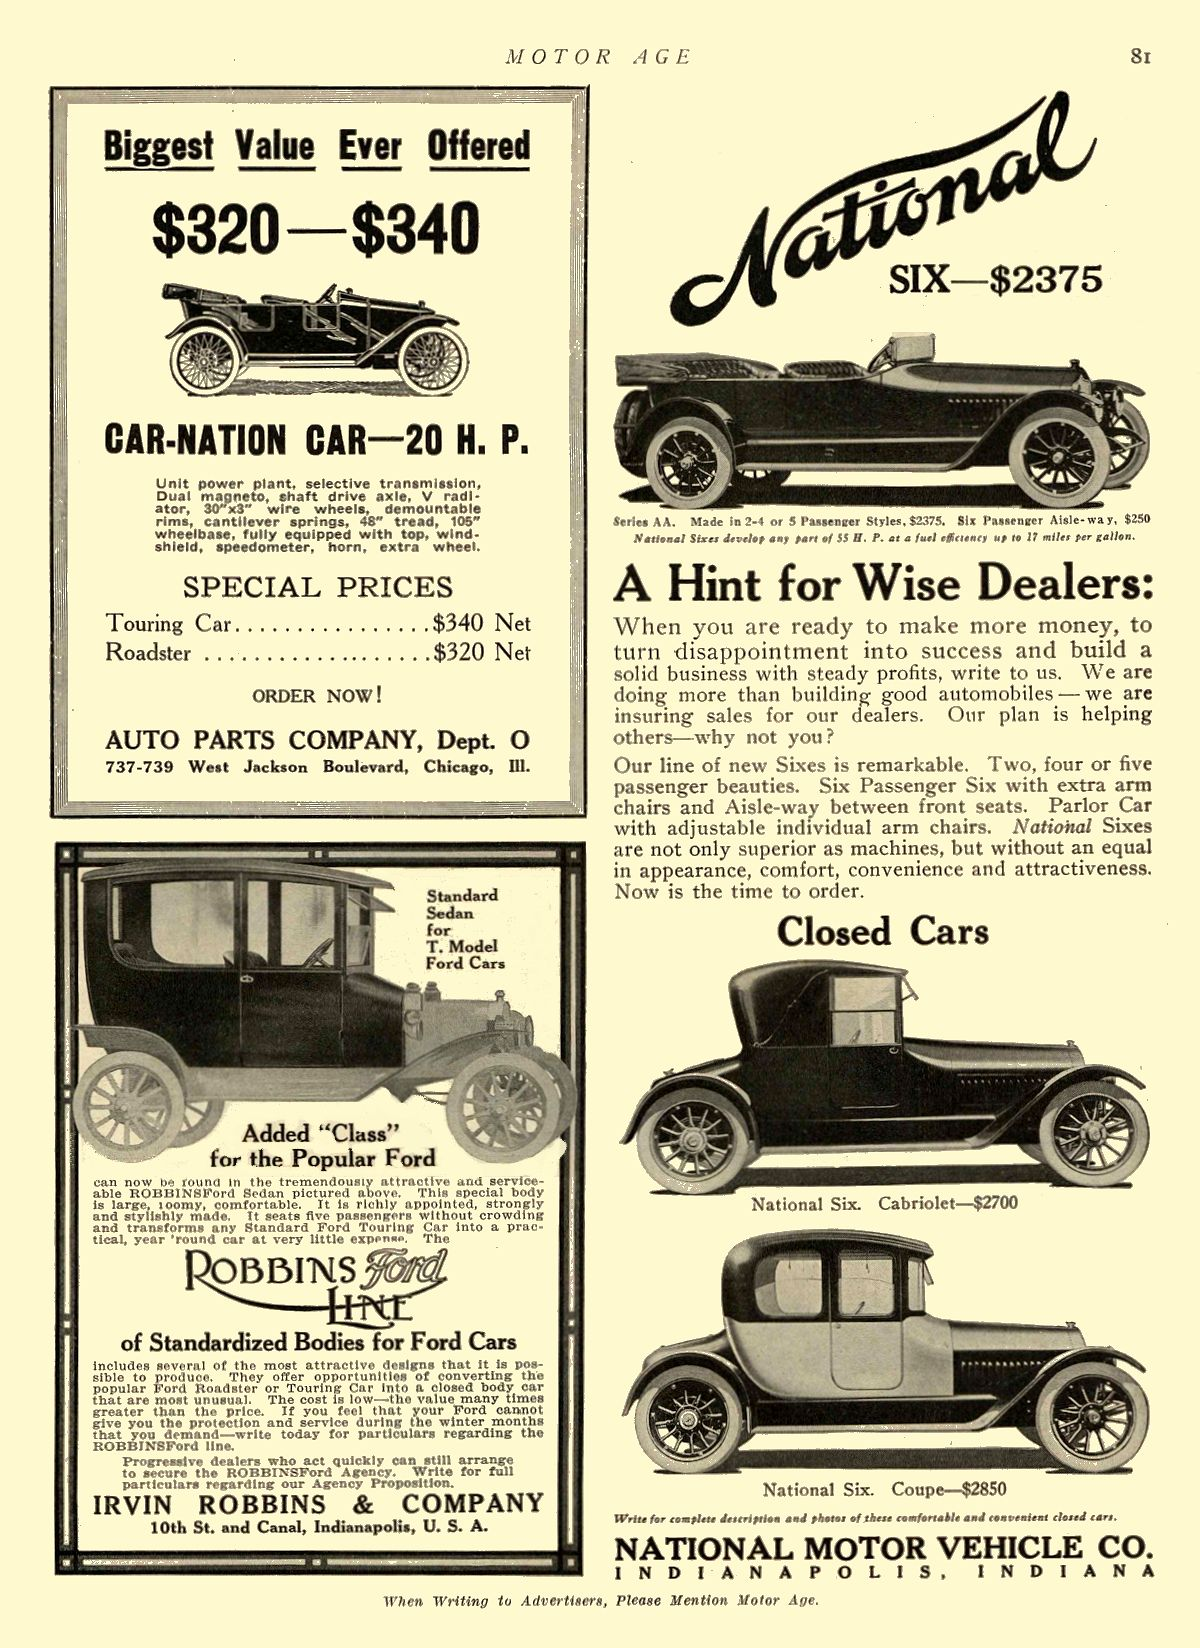 1914 12 3 NATIONAL A Hint for Wise Dealers: NATIONAL MOTOR VEHICLE CO. Indianapolis, IND MOTOR AGE December 3, 1914 8.5″x11.75″ page 81